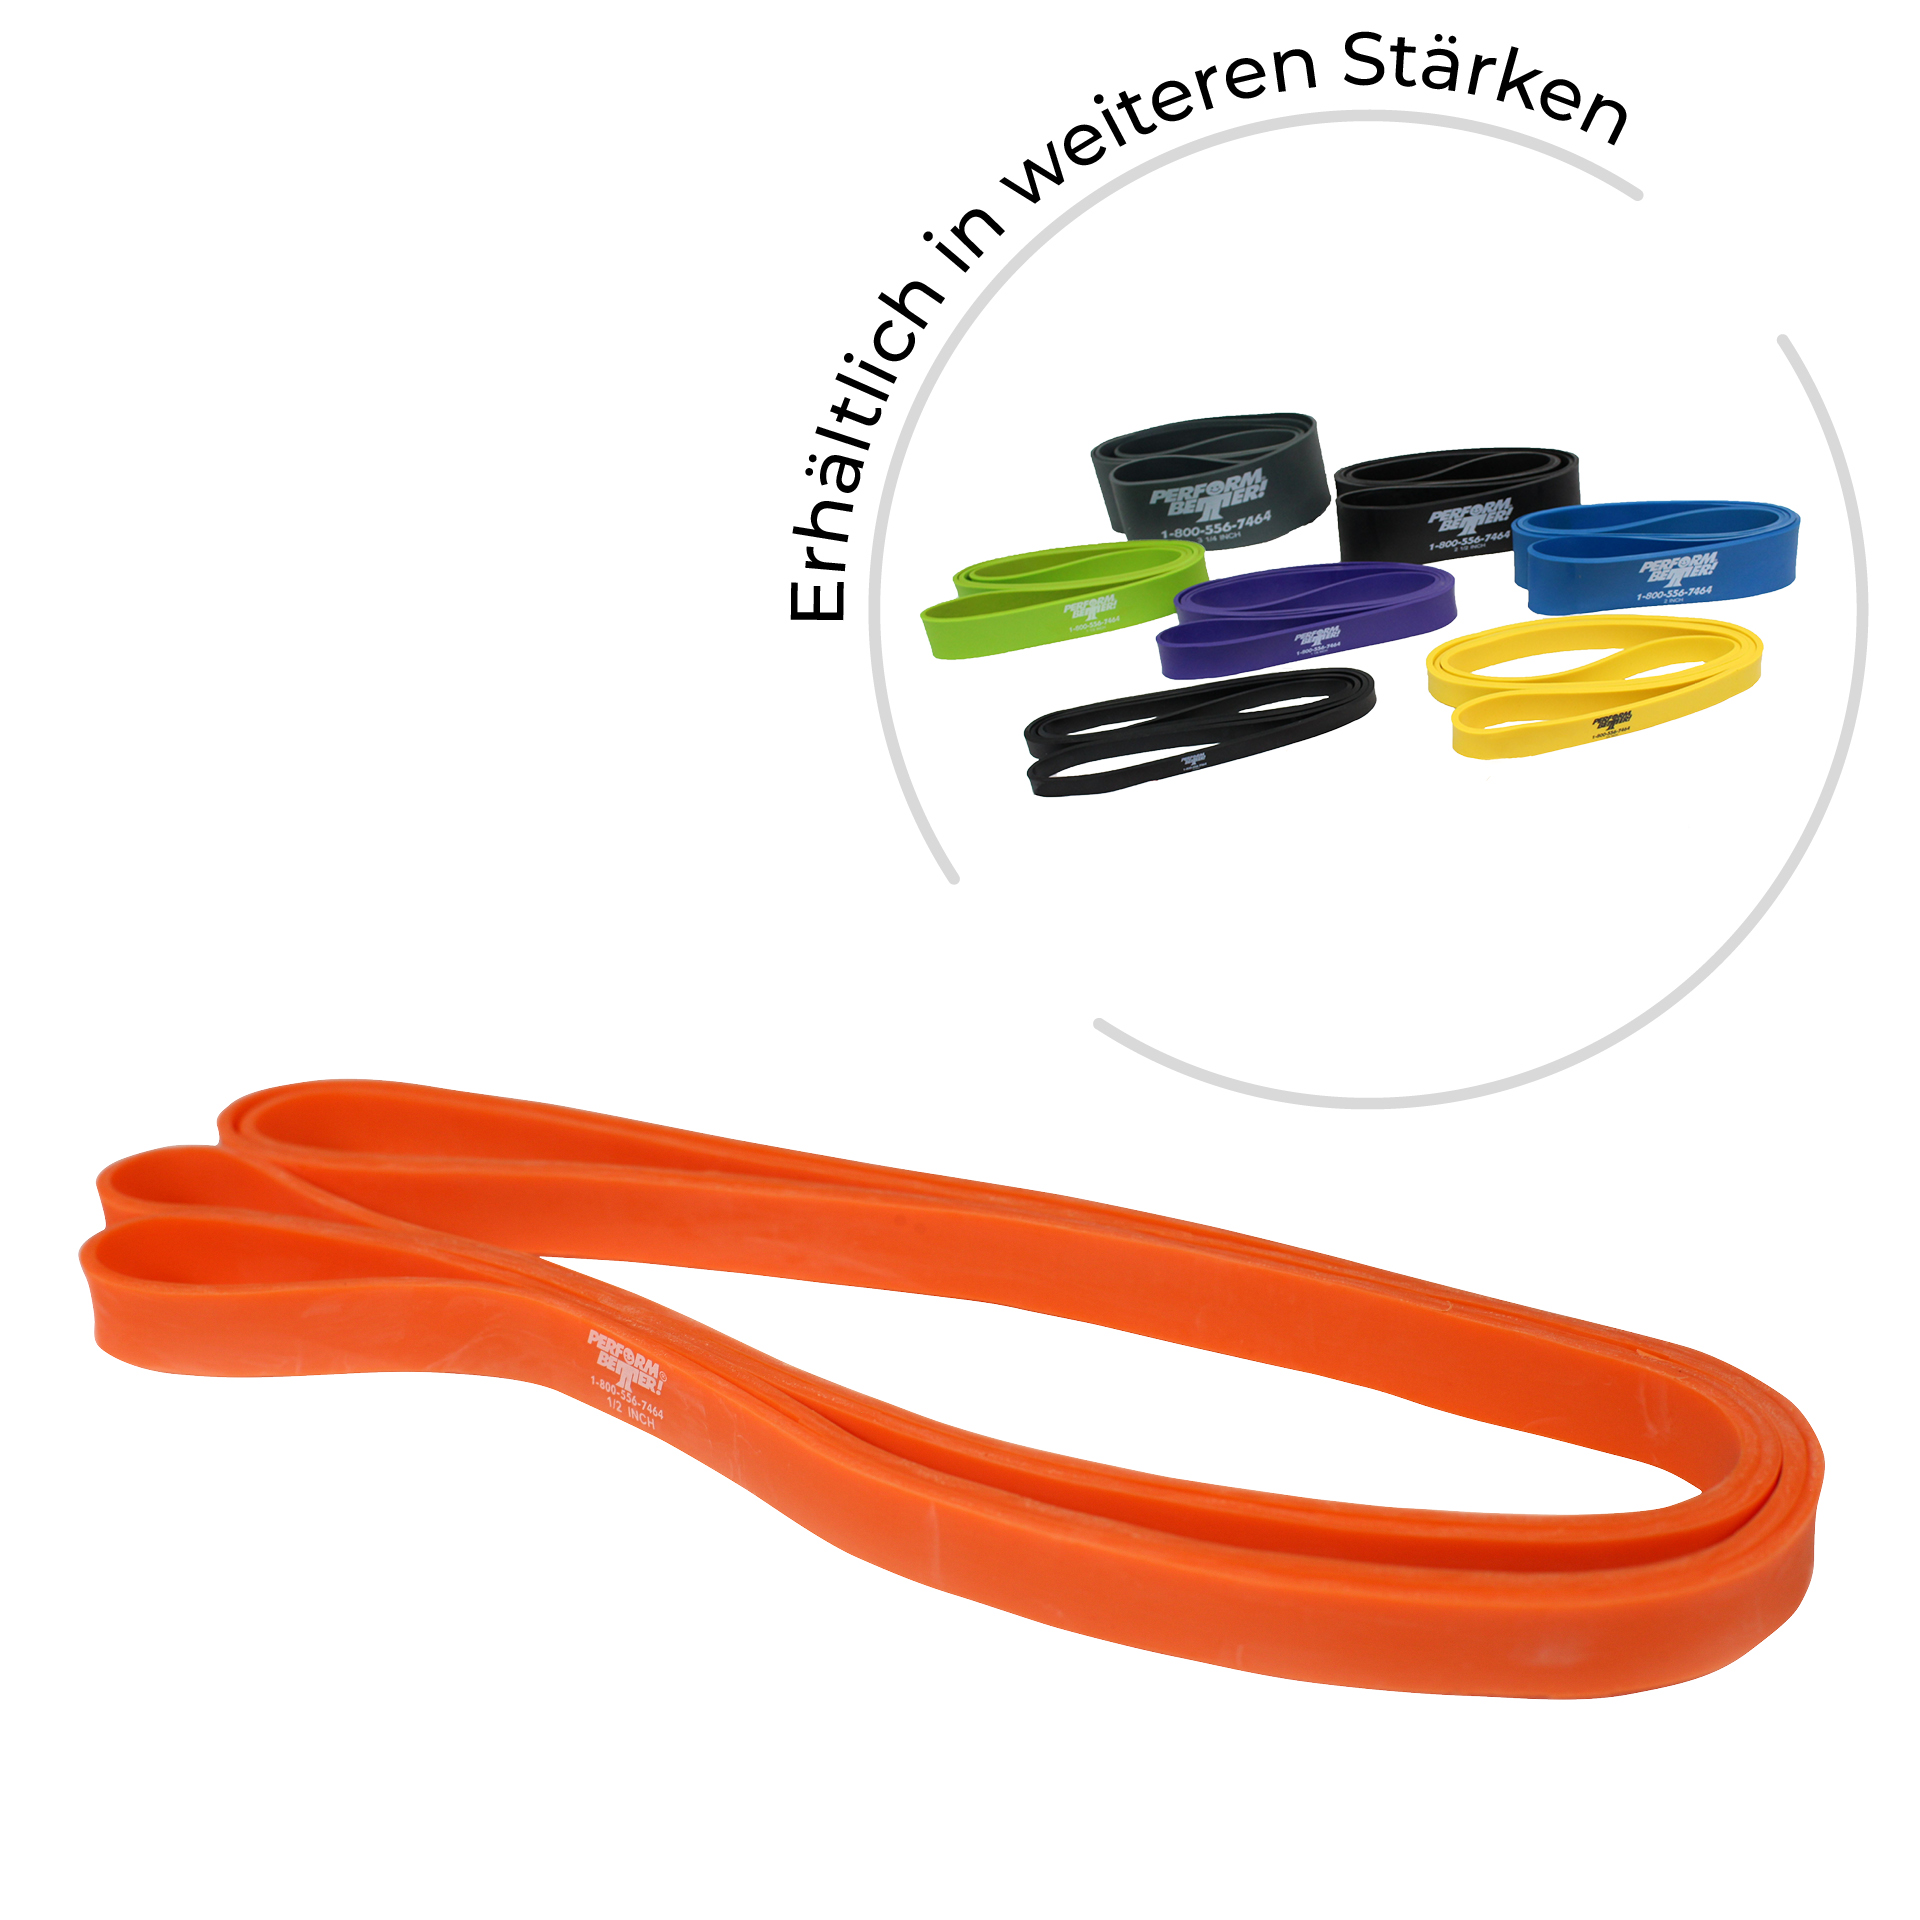 Superbands - 0,6 cm breit, 6 kg, orange 5mm dick